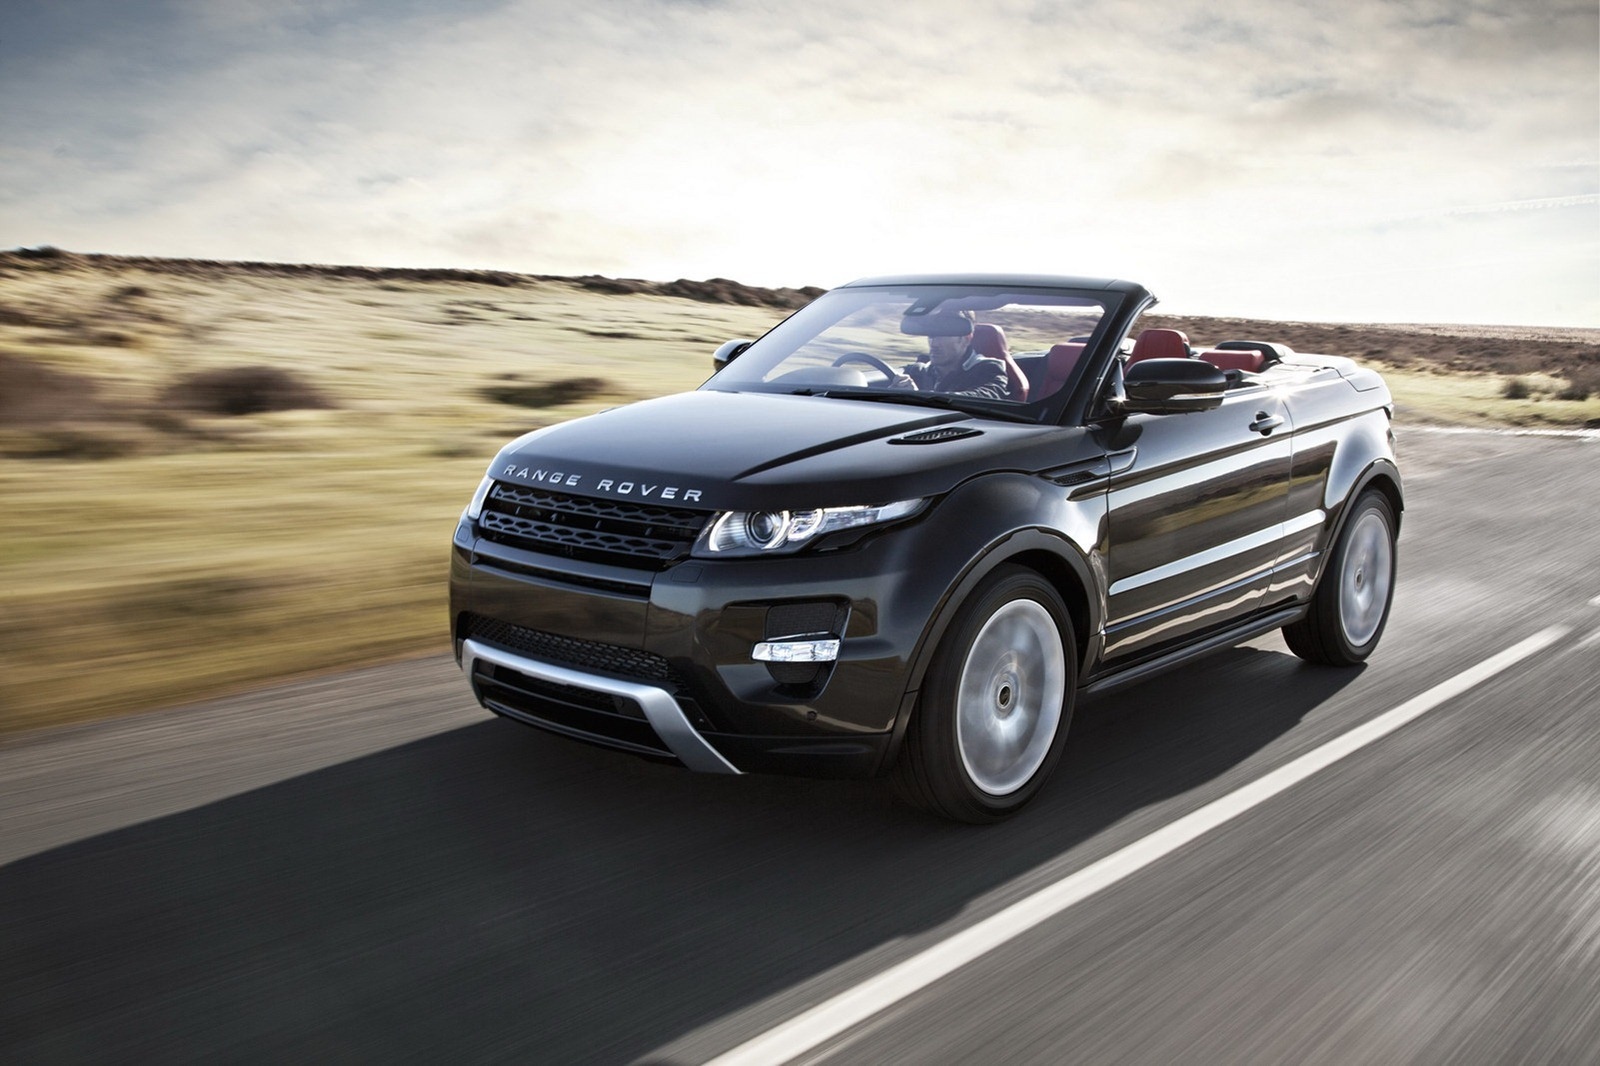 Range Rover Evoque Convertible not entering series production